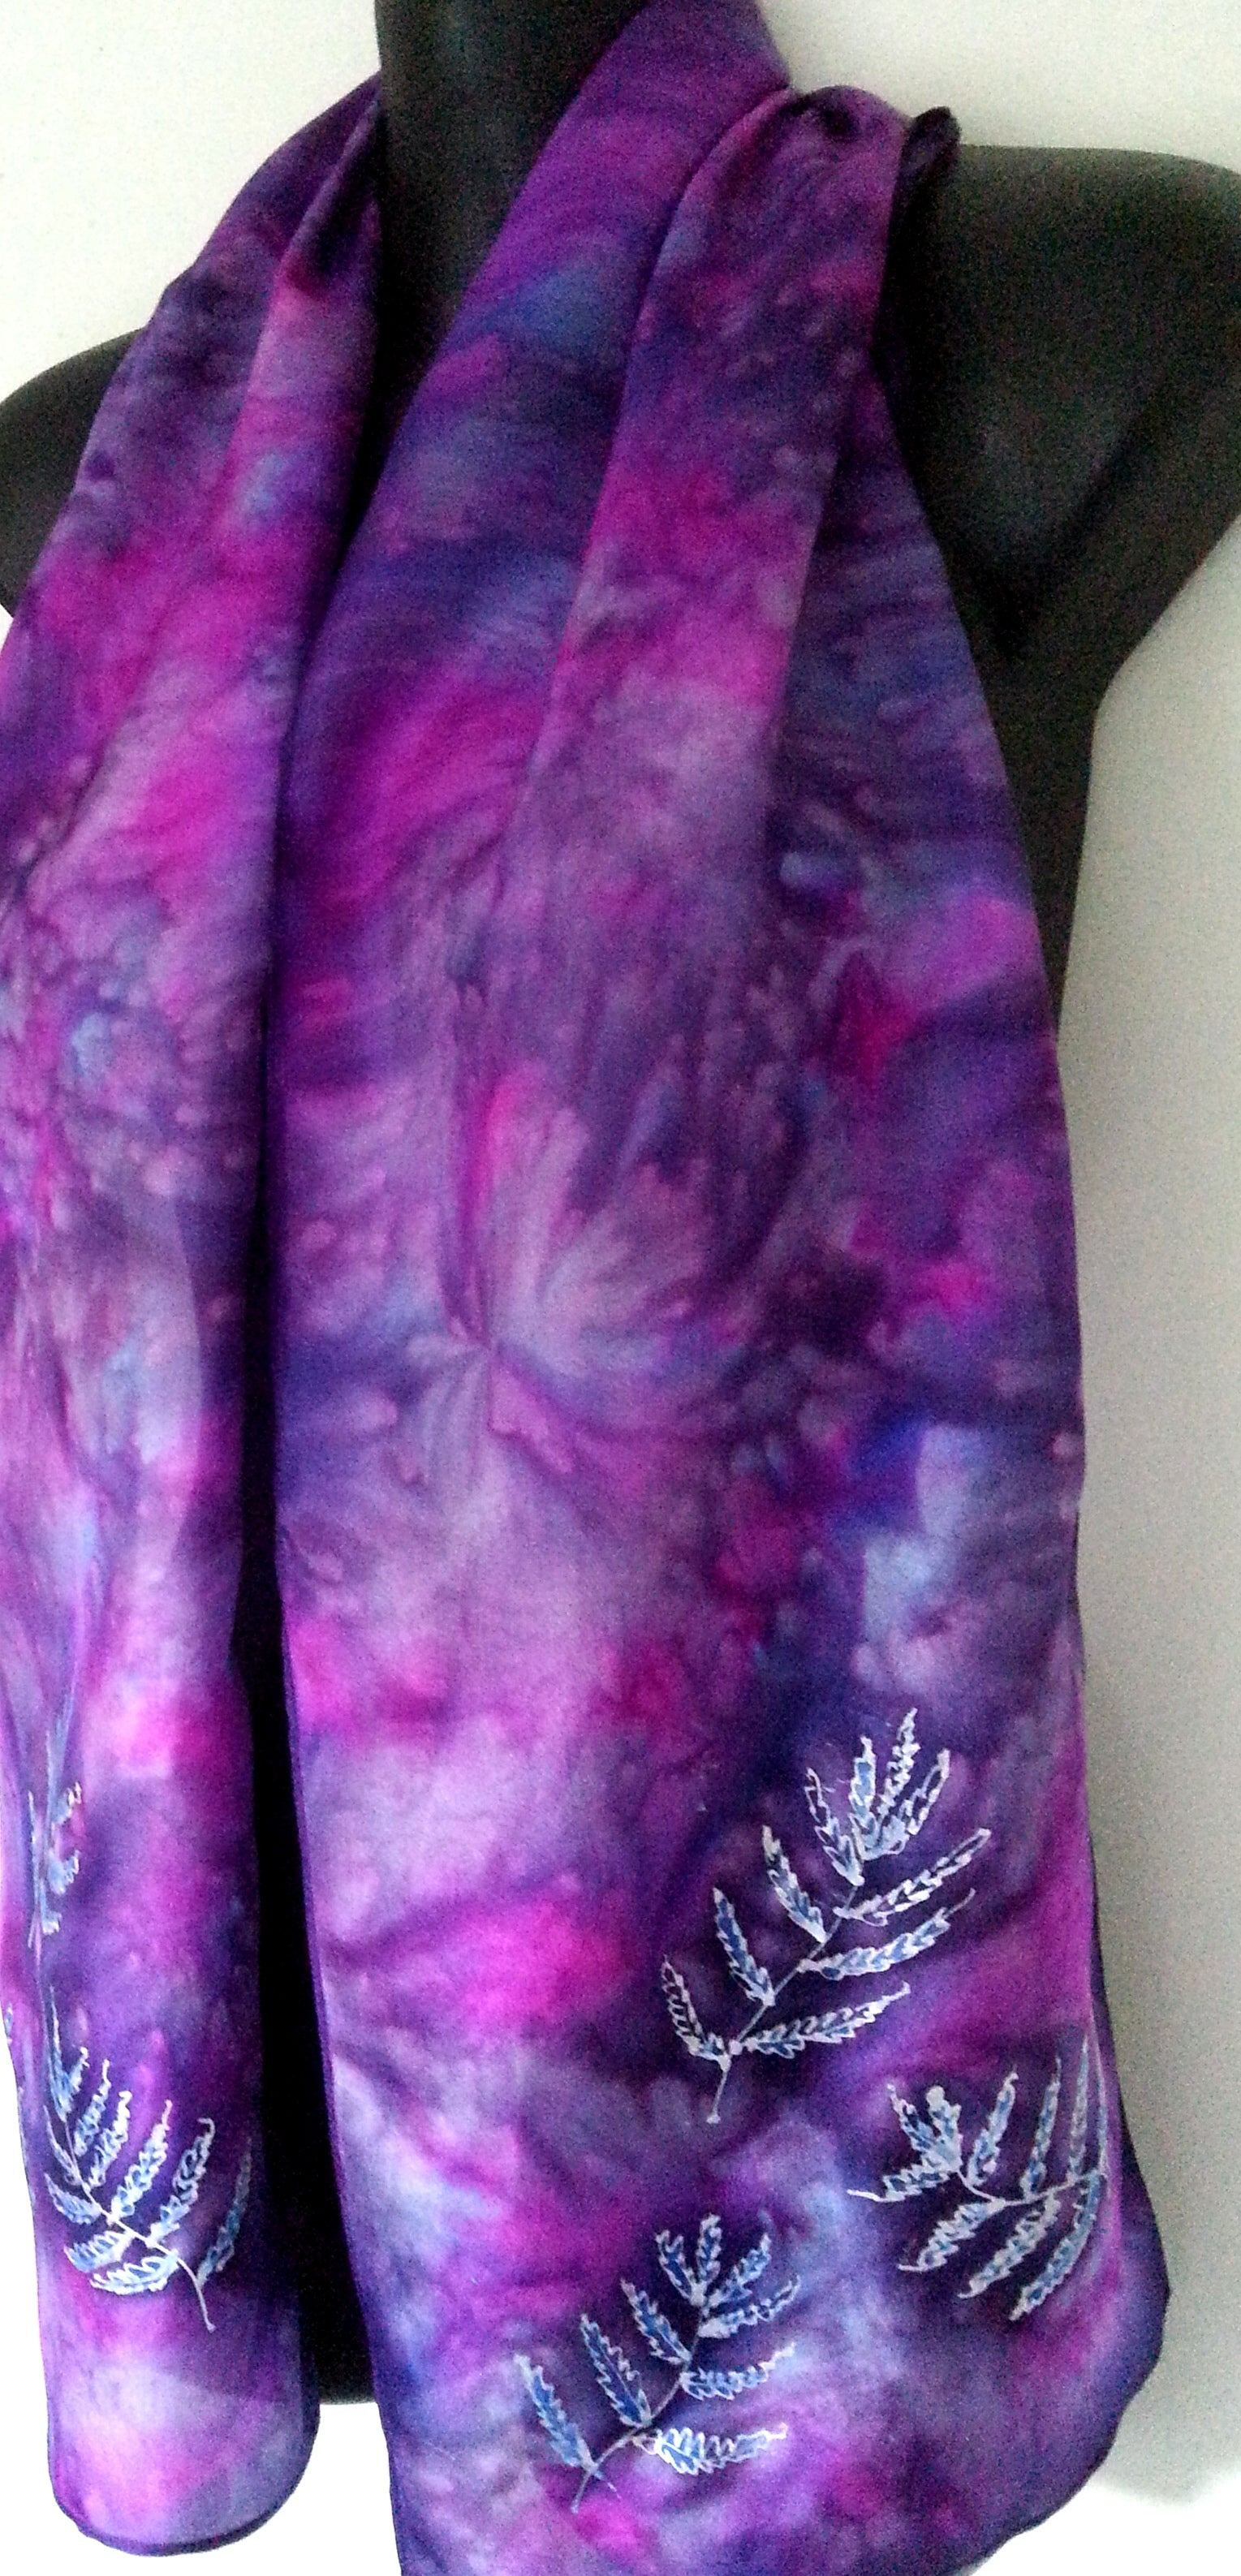 Silver Ferns on Purple  - Hand painted Silk Scarf - Satherley Silks NZ